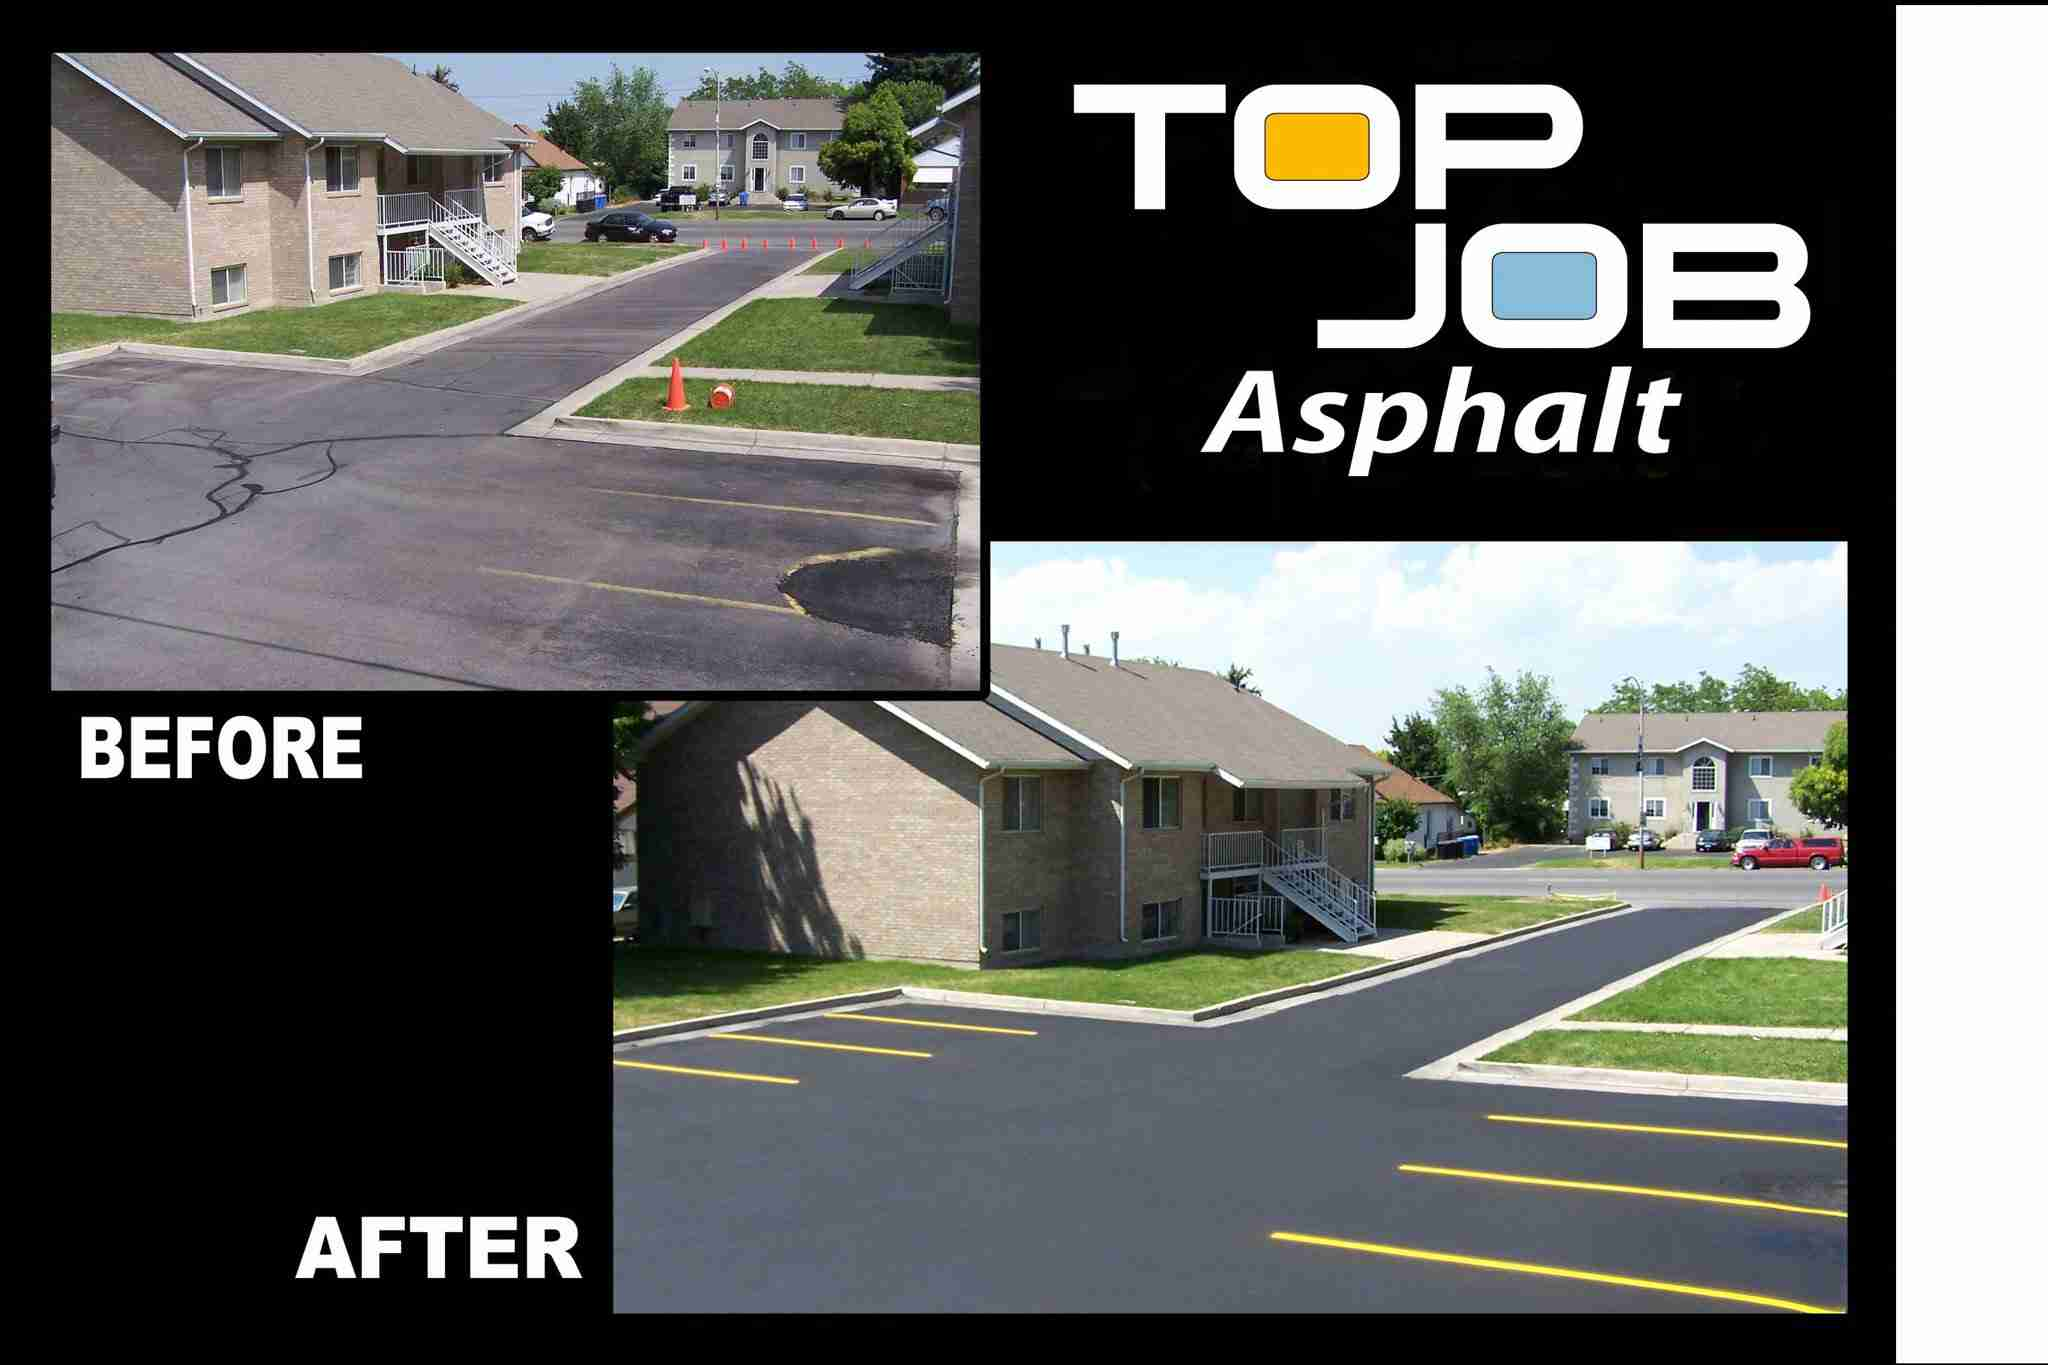 Apartments before and after - Top Job Asphalt